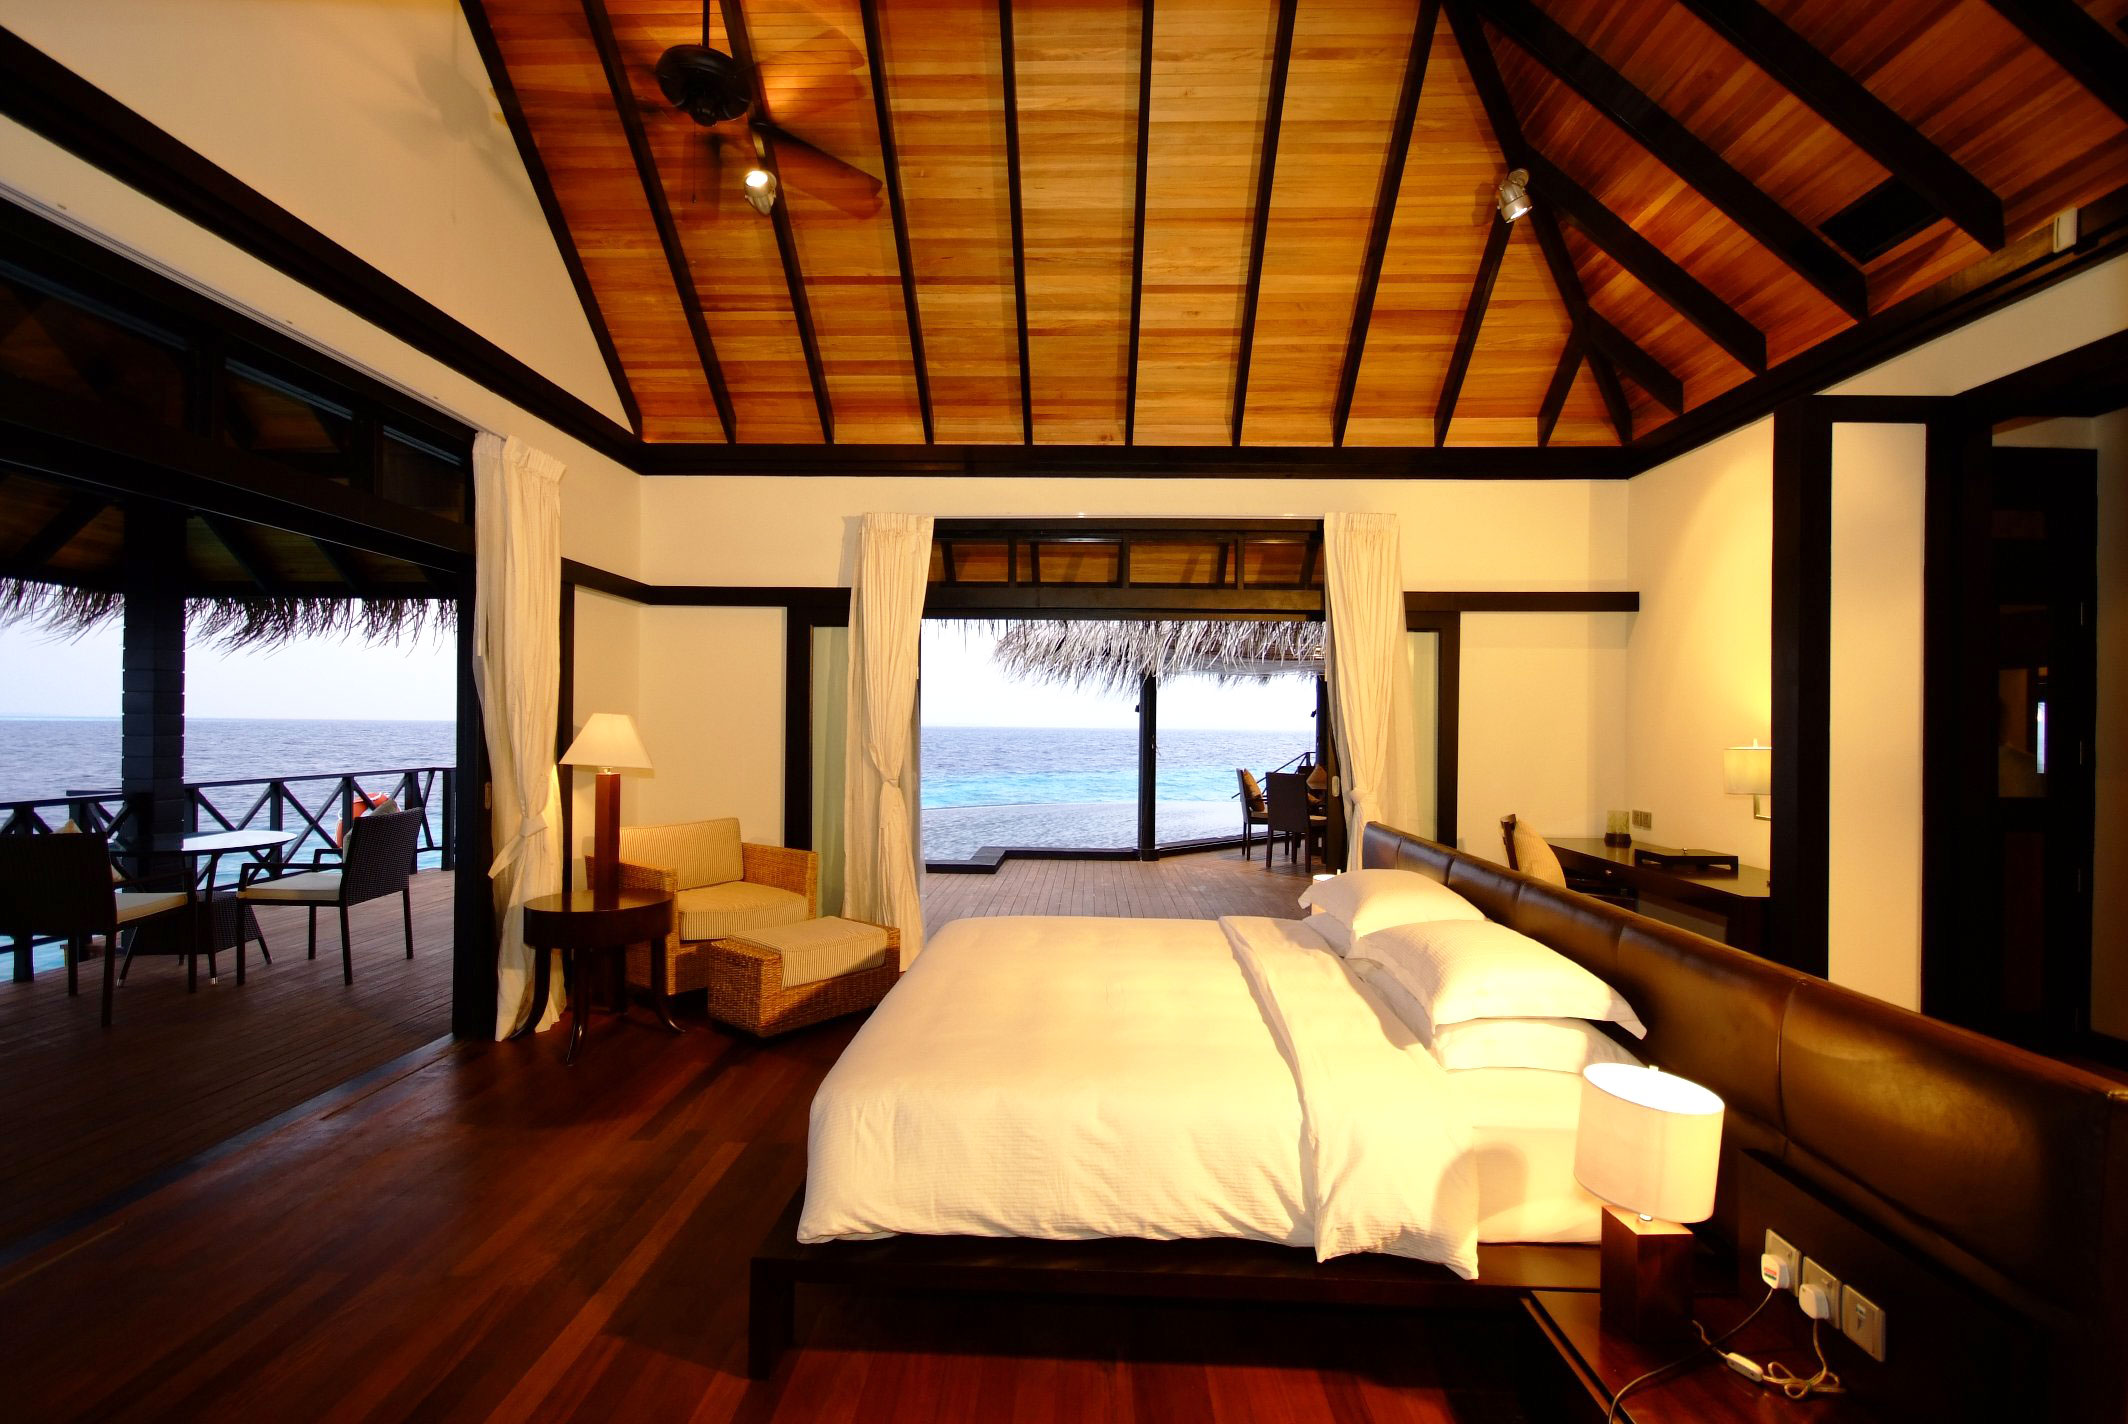 Iruveli A Serene Beach House In Maldives Architecture